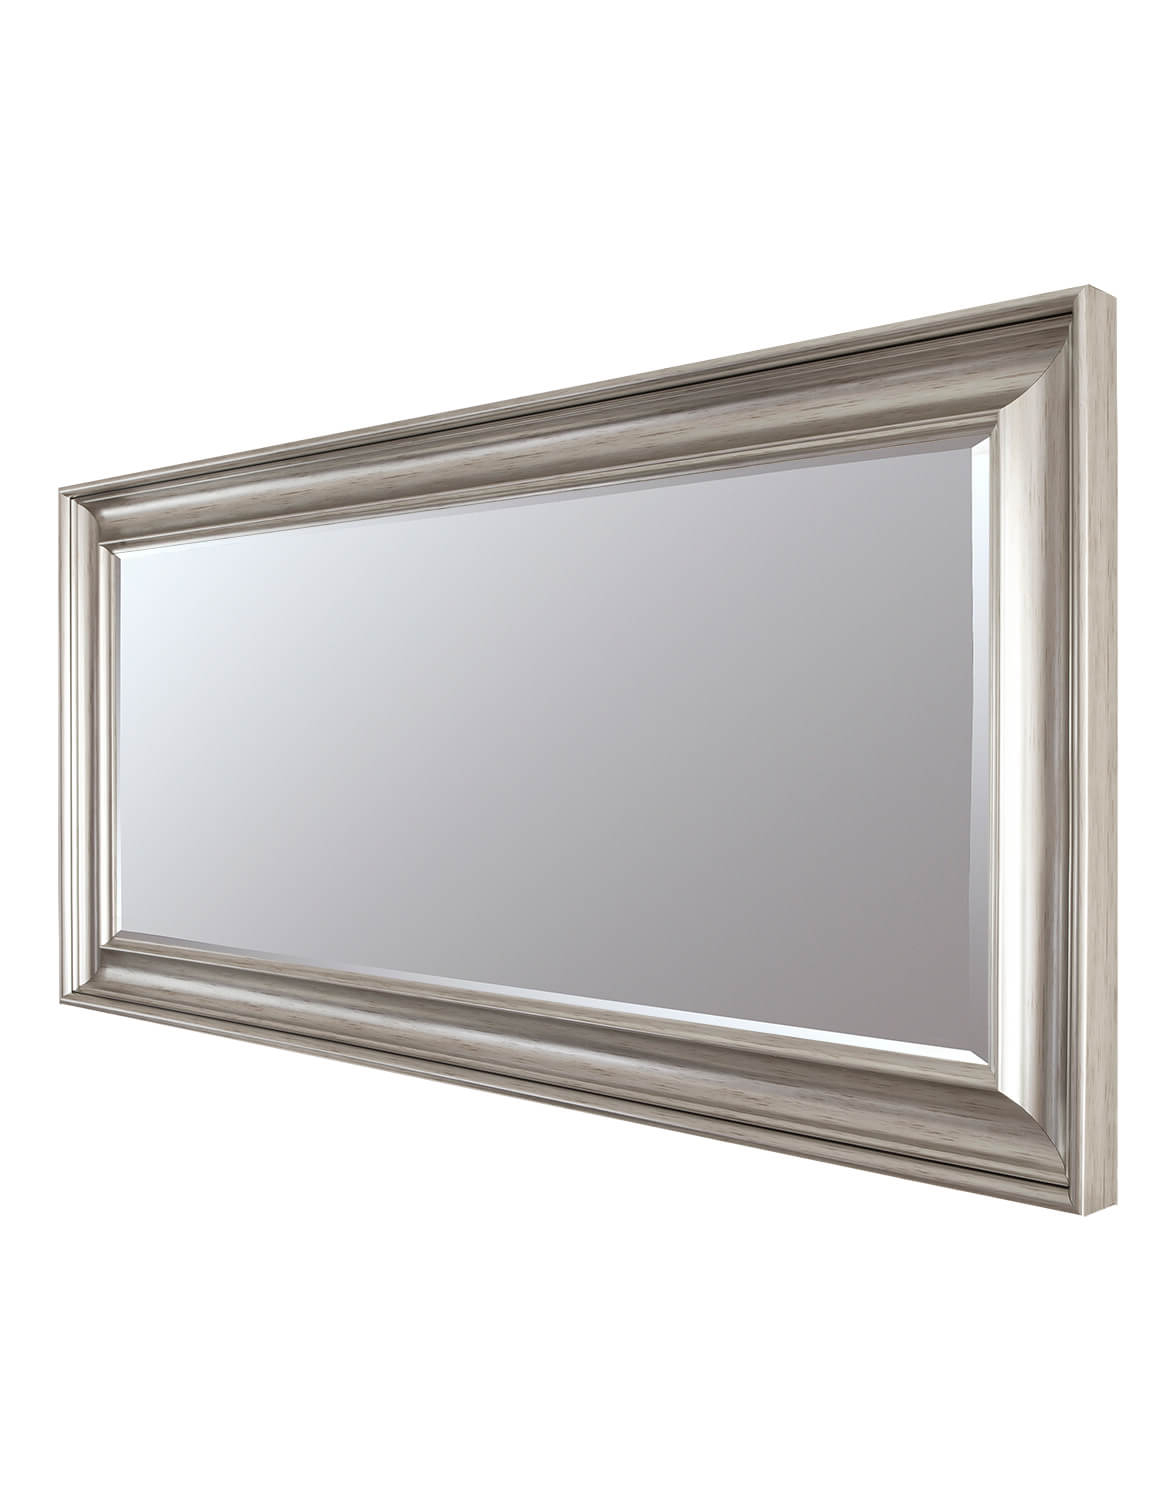 Long Silver Wall Mirrors For Widely Used Luxe Silver 77x138cm Long Wall Mirror (View 3 of 20)